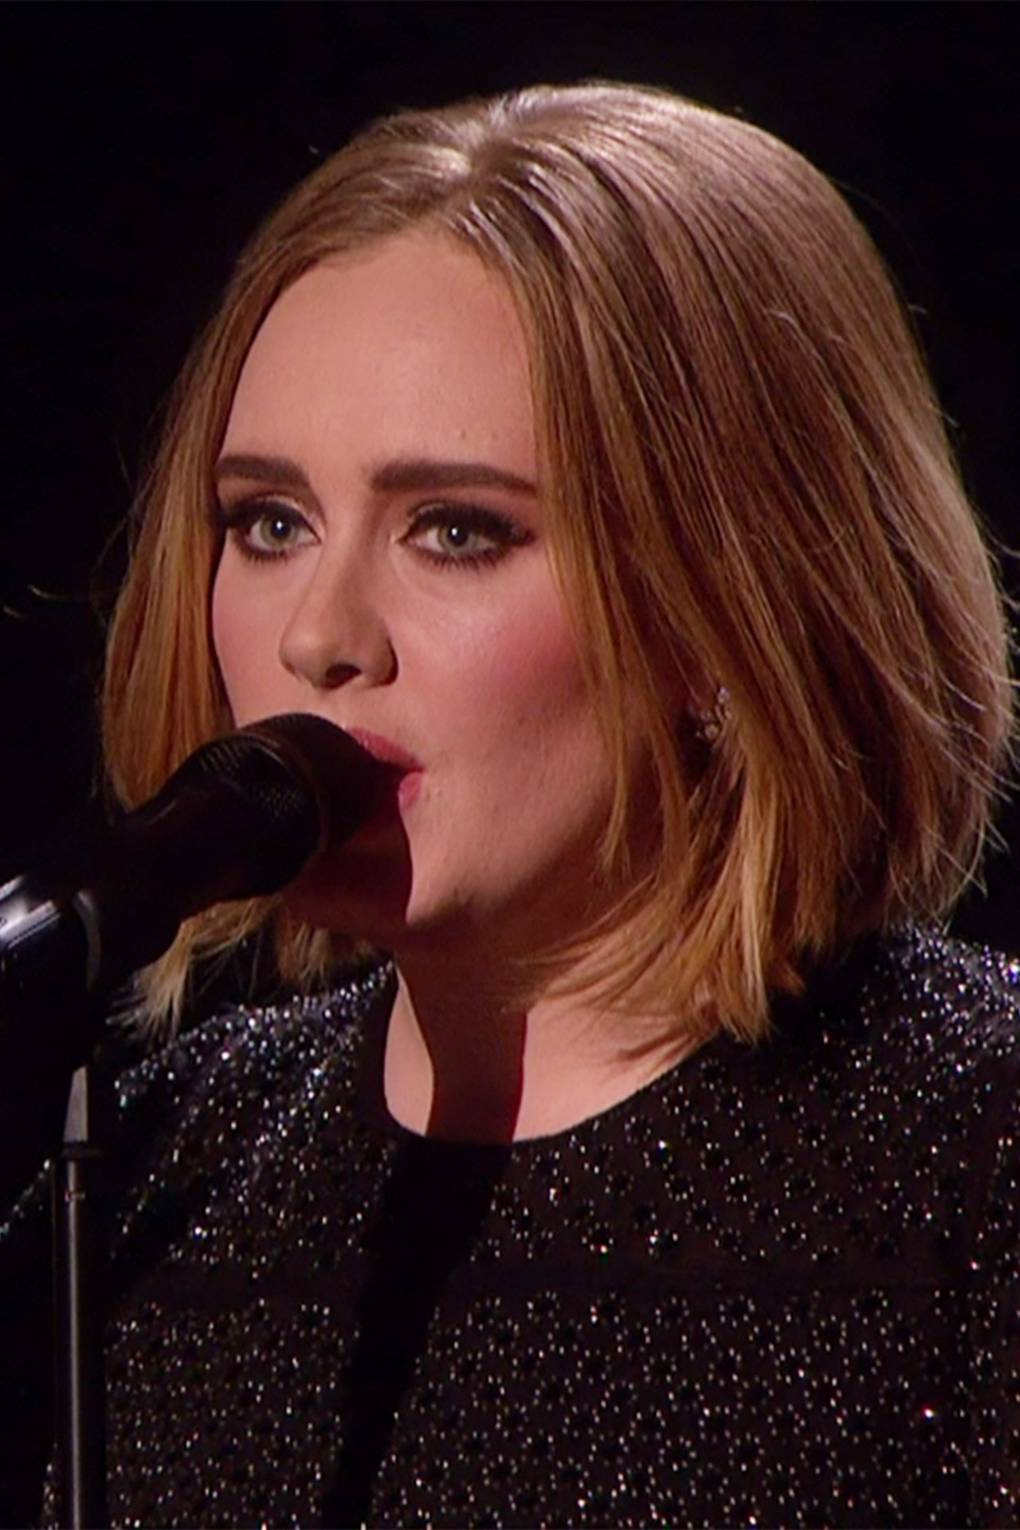 Adele hairstyles beauty looks 2017 look book pictures photos adele hairstyles beauty looks 2017 look book pictures photos glamour uk baditri Image collections